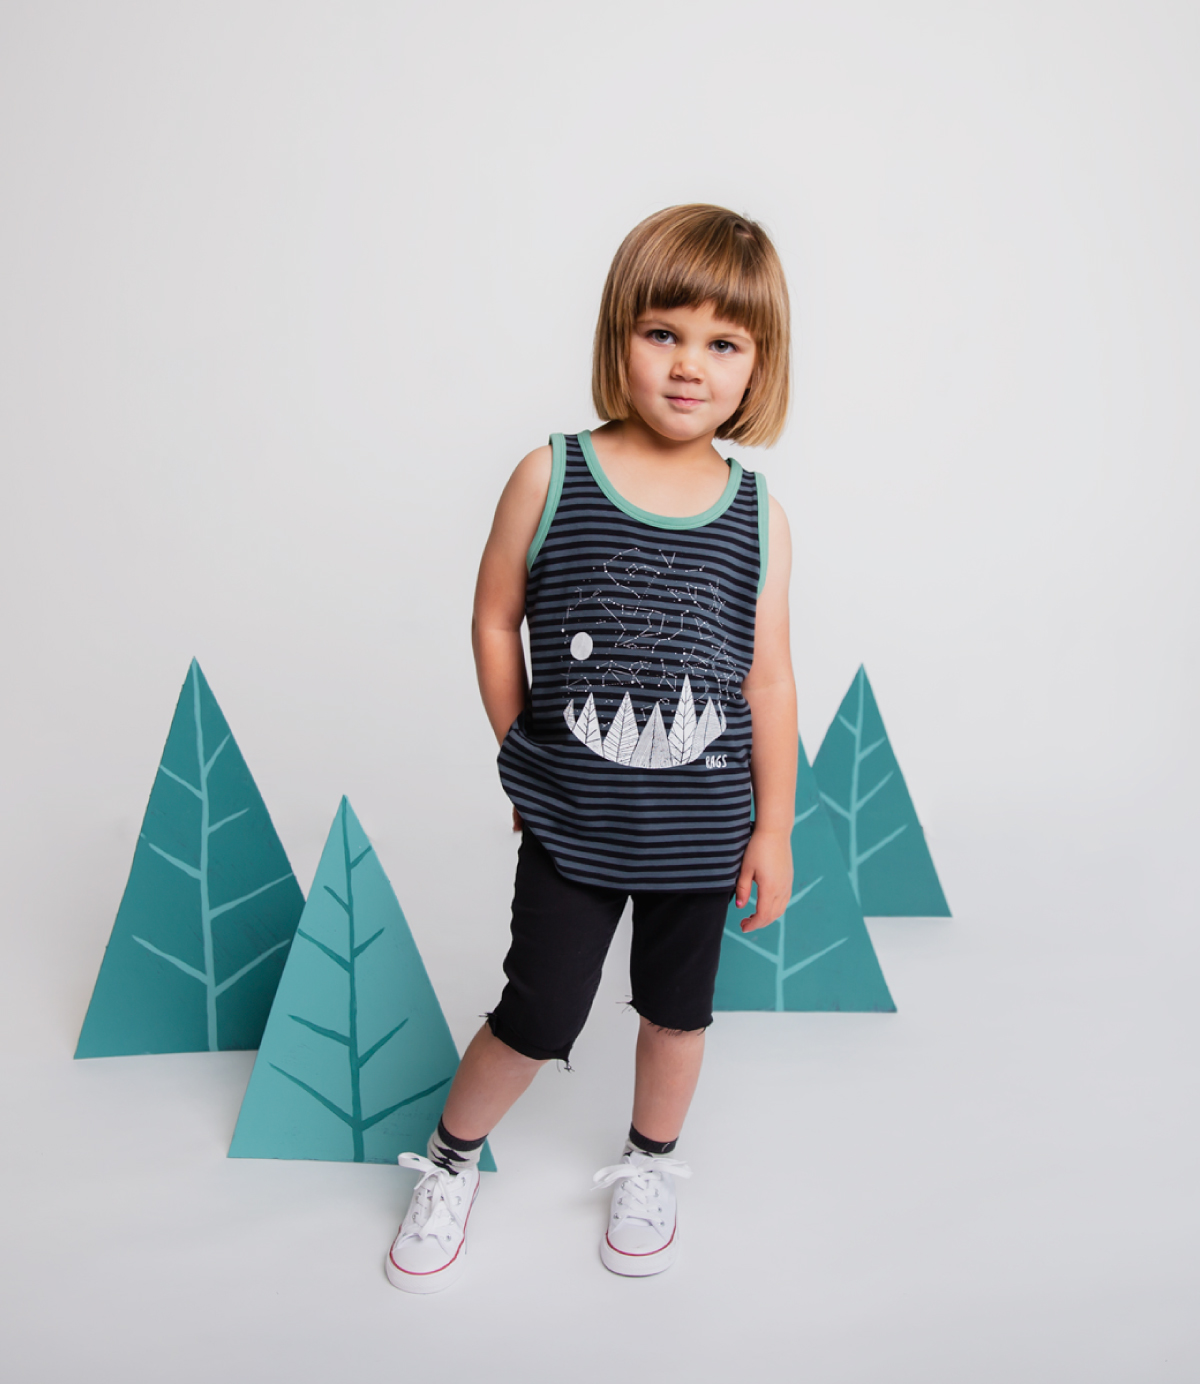 Our tanks have been flying, snag this kids tank 'Starry Night' before it's gone!